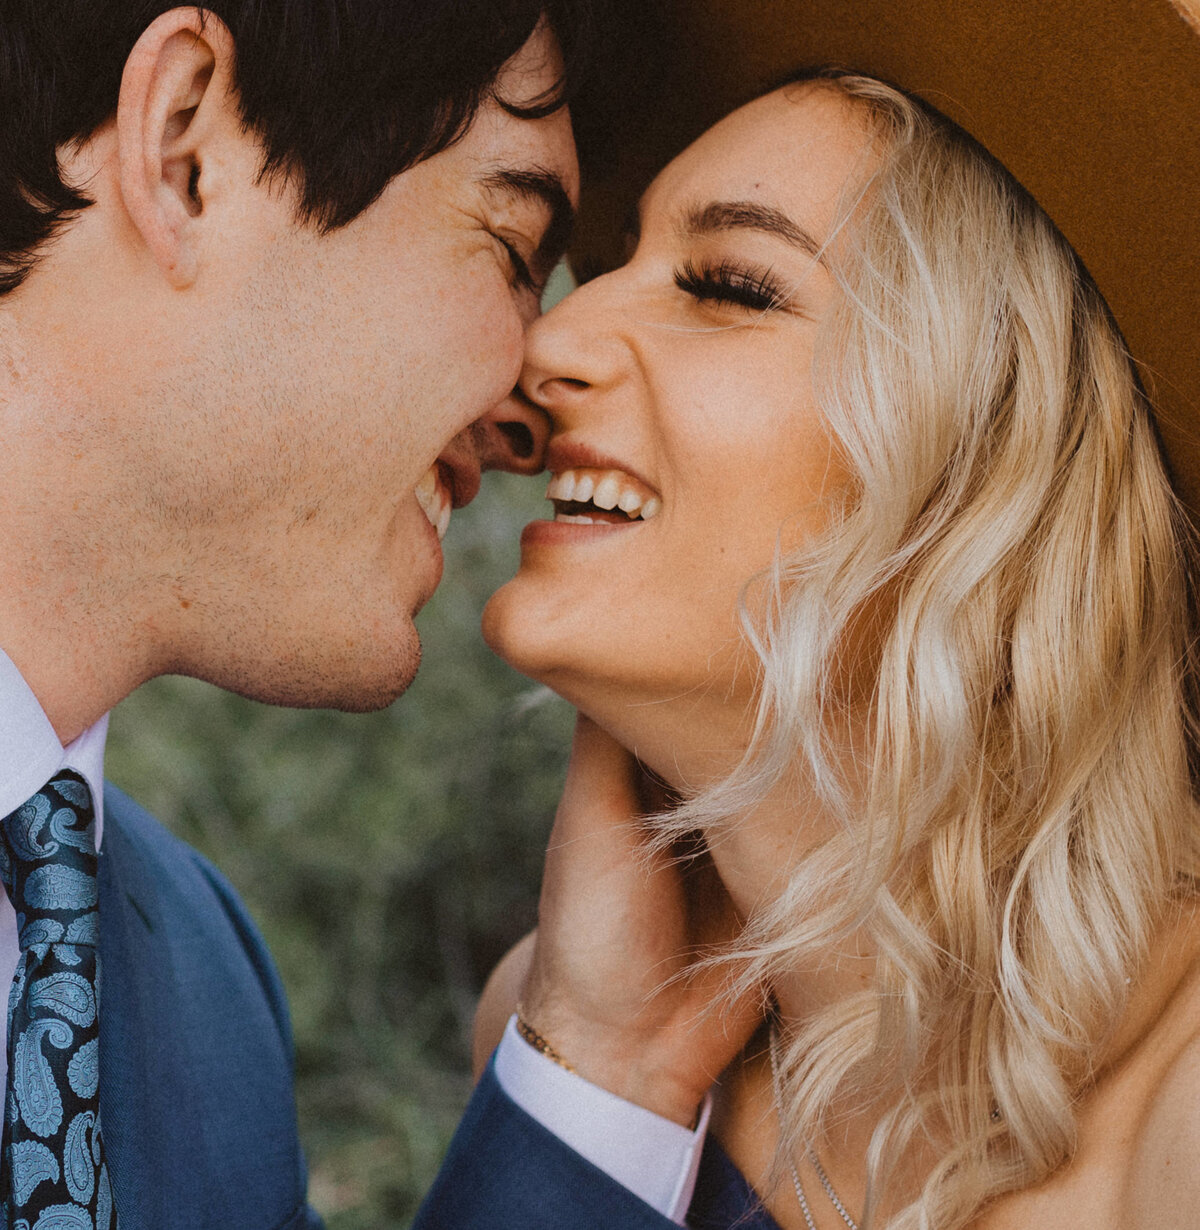 liv_hettinga_photography_joshua_tree_adventure_elopement-20